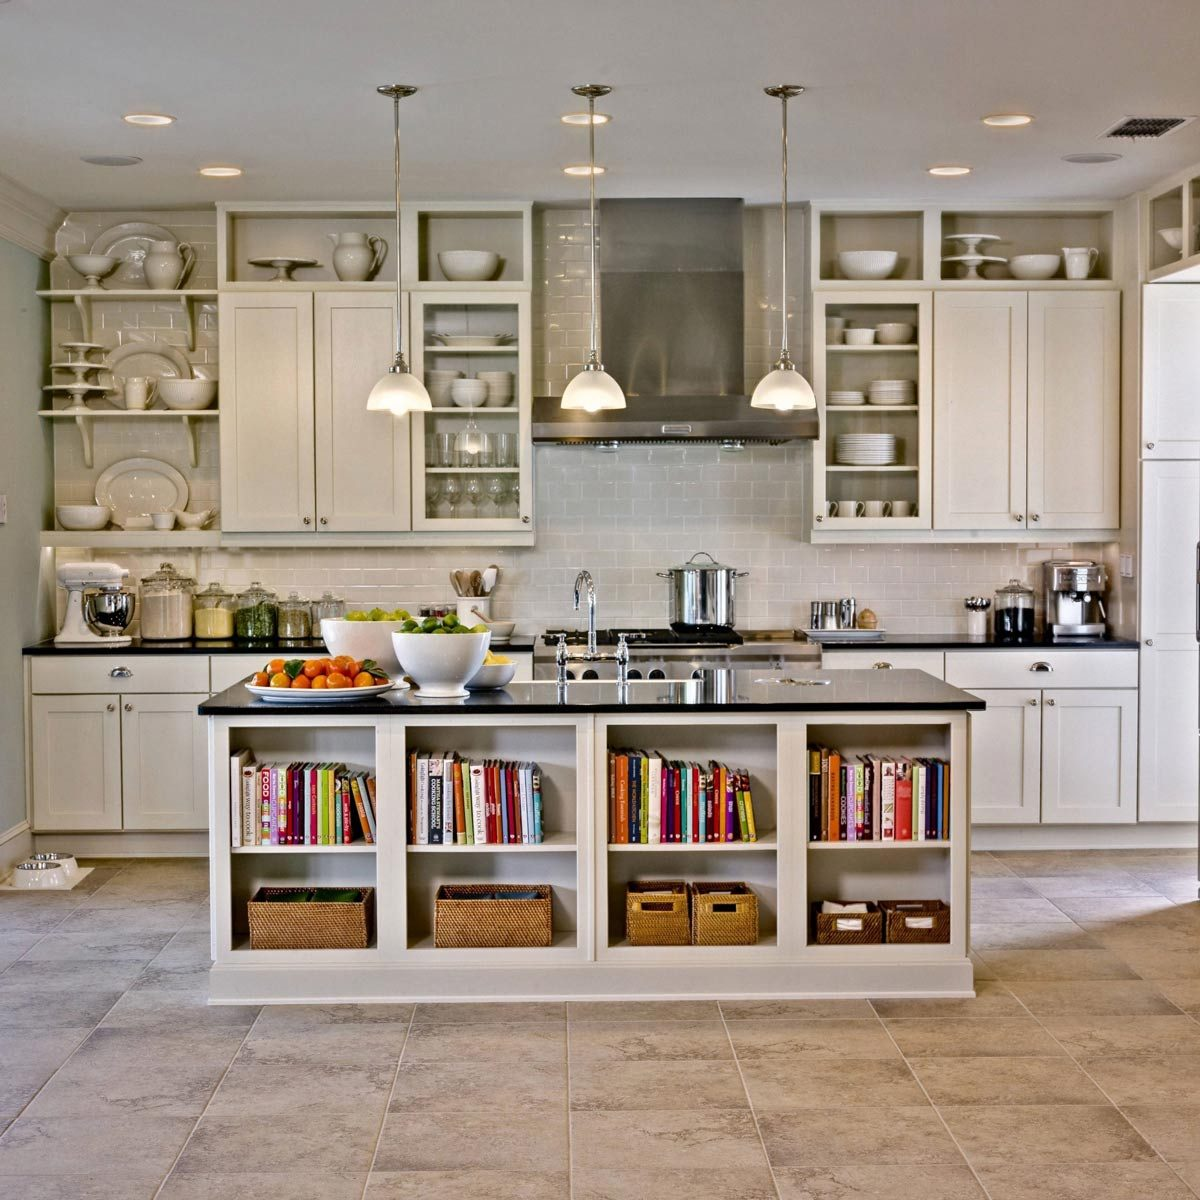 Image of: 11 Ideas For Organizing Your Kitchen The Family Handyman